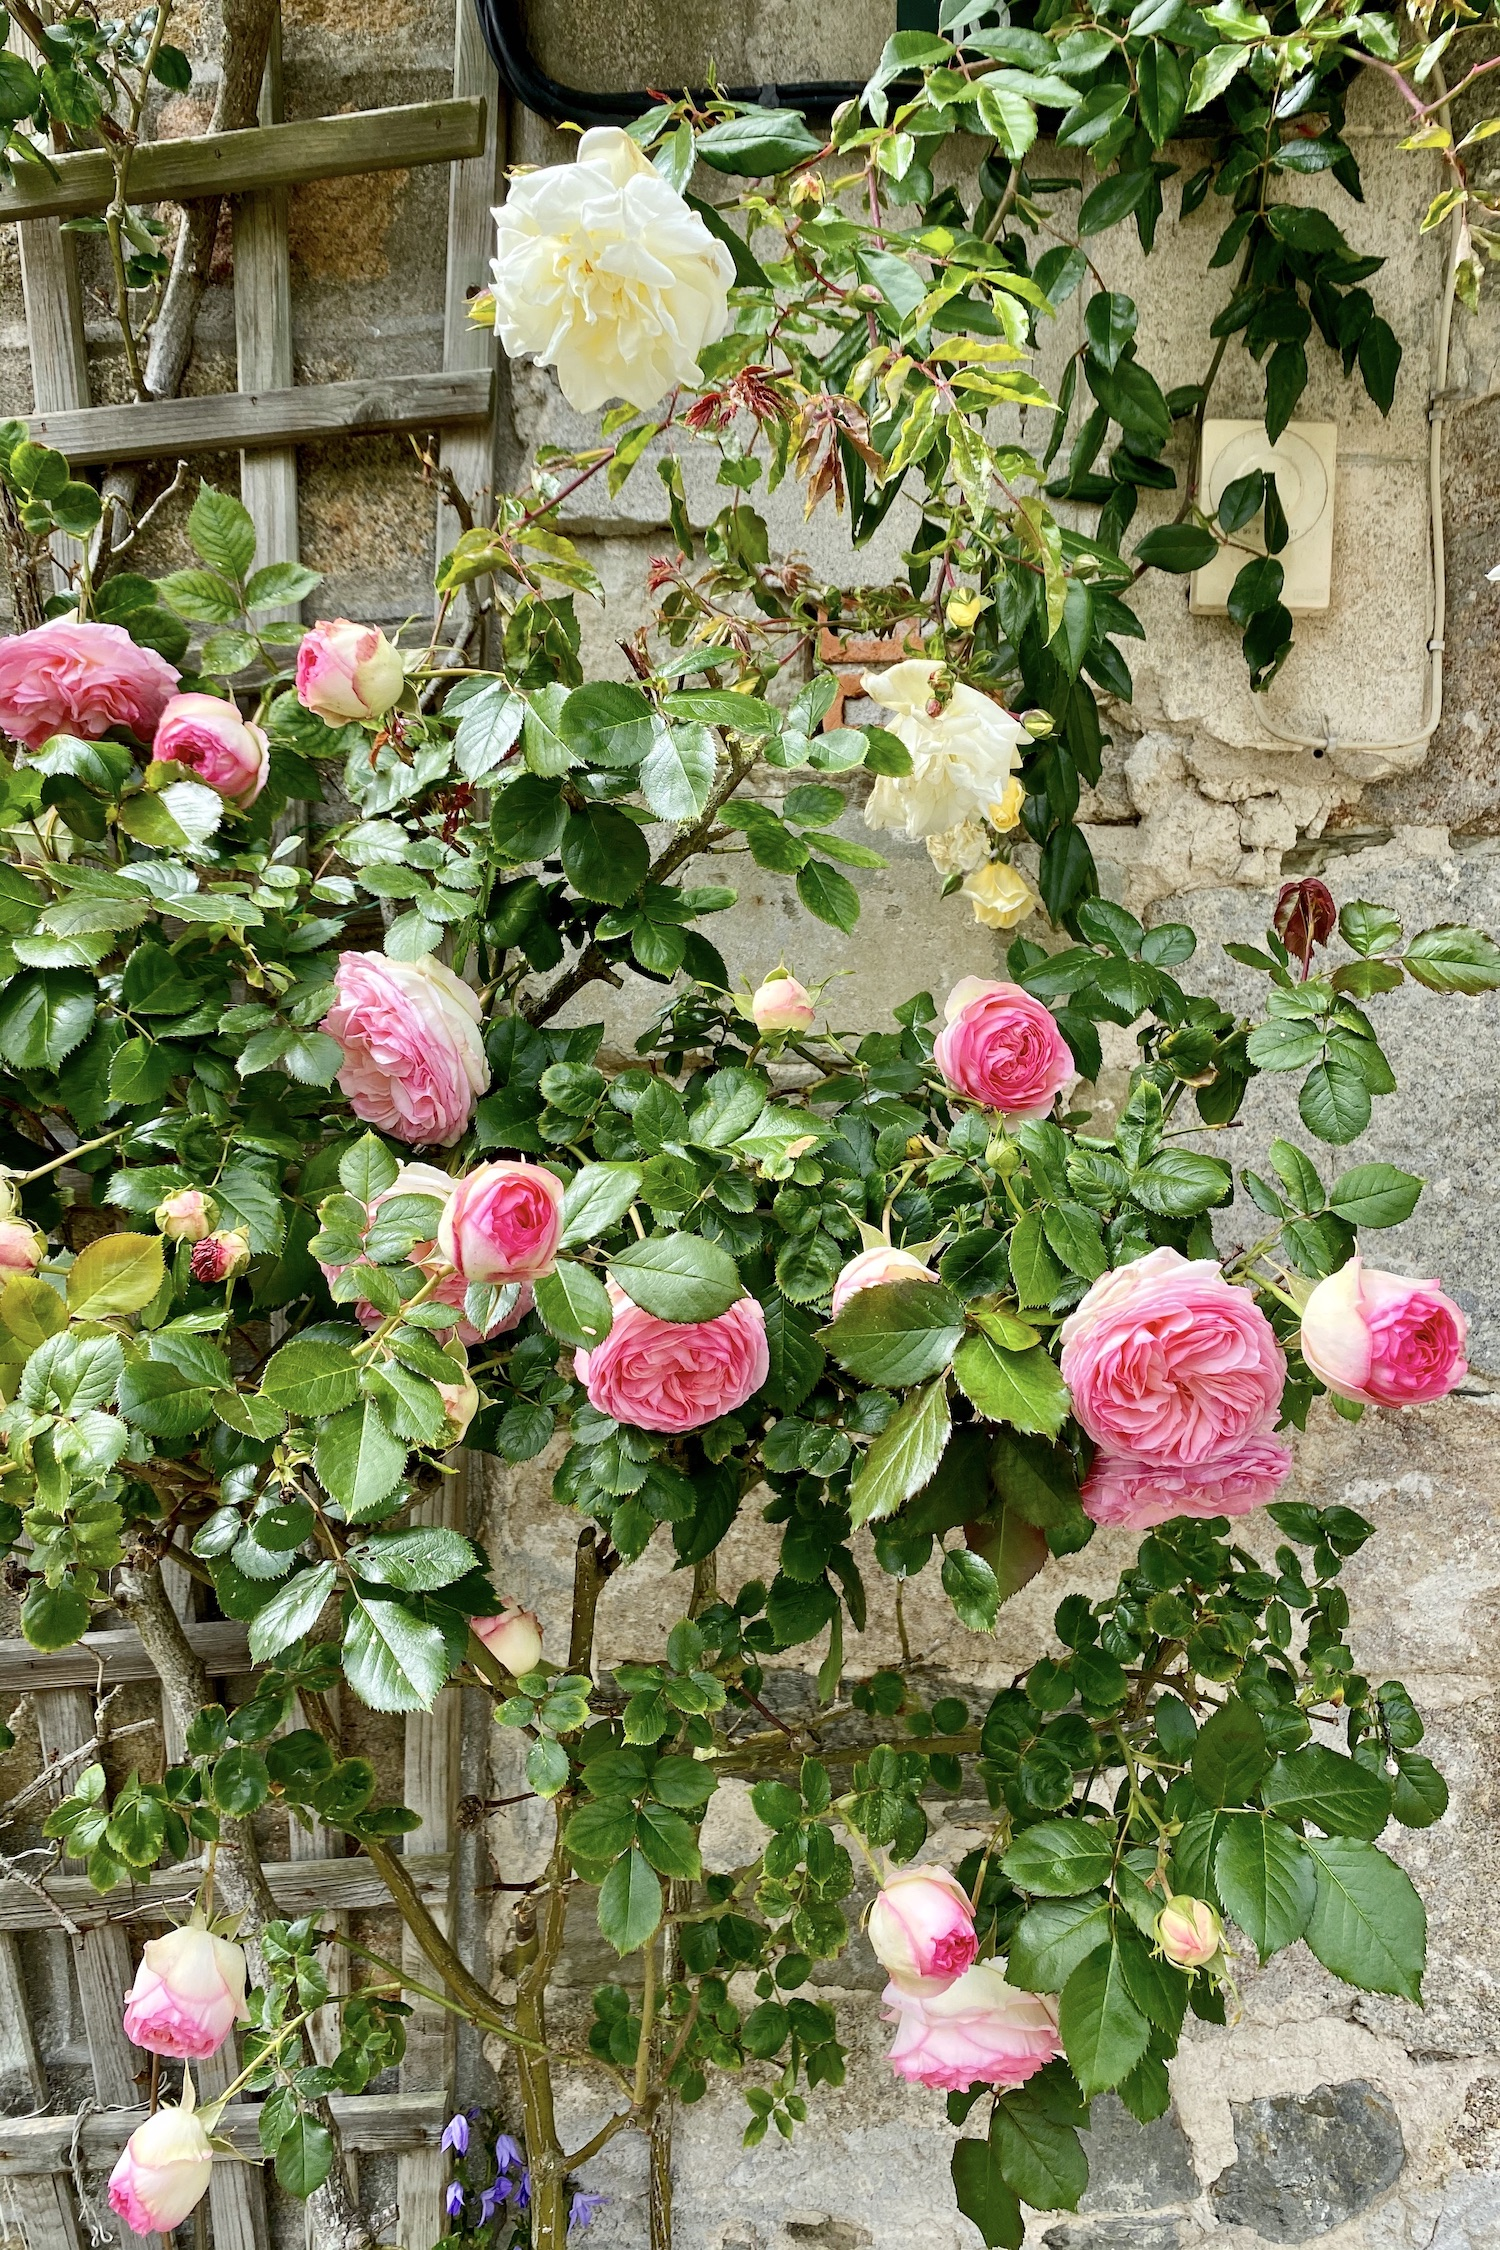 Roses in Genêts